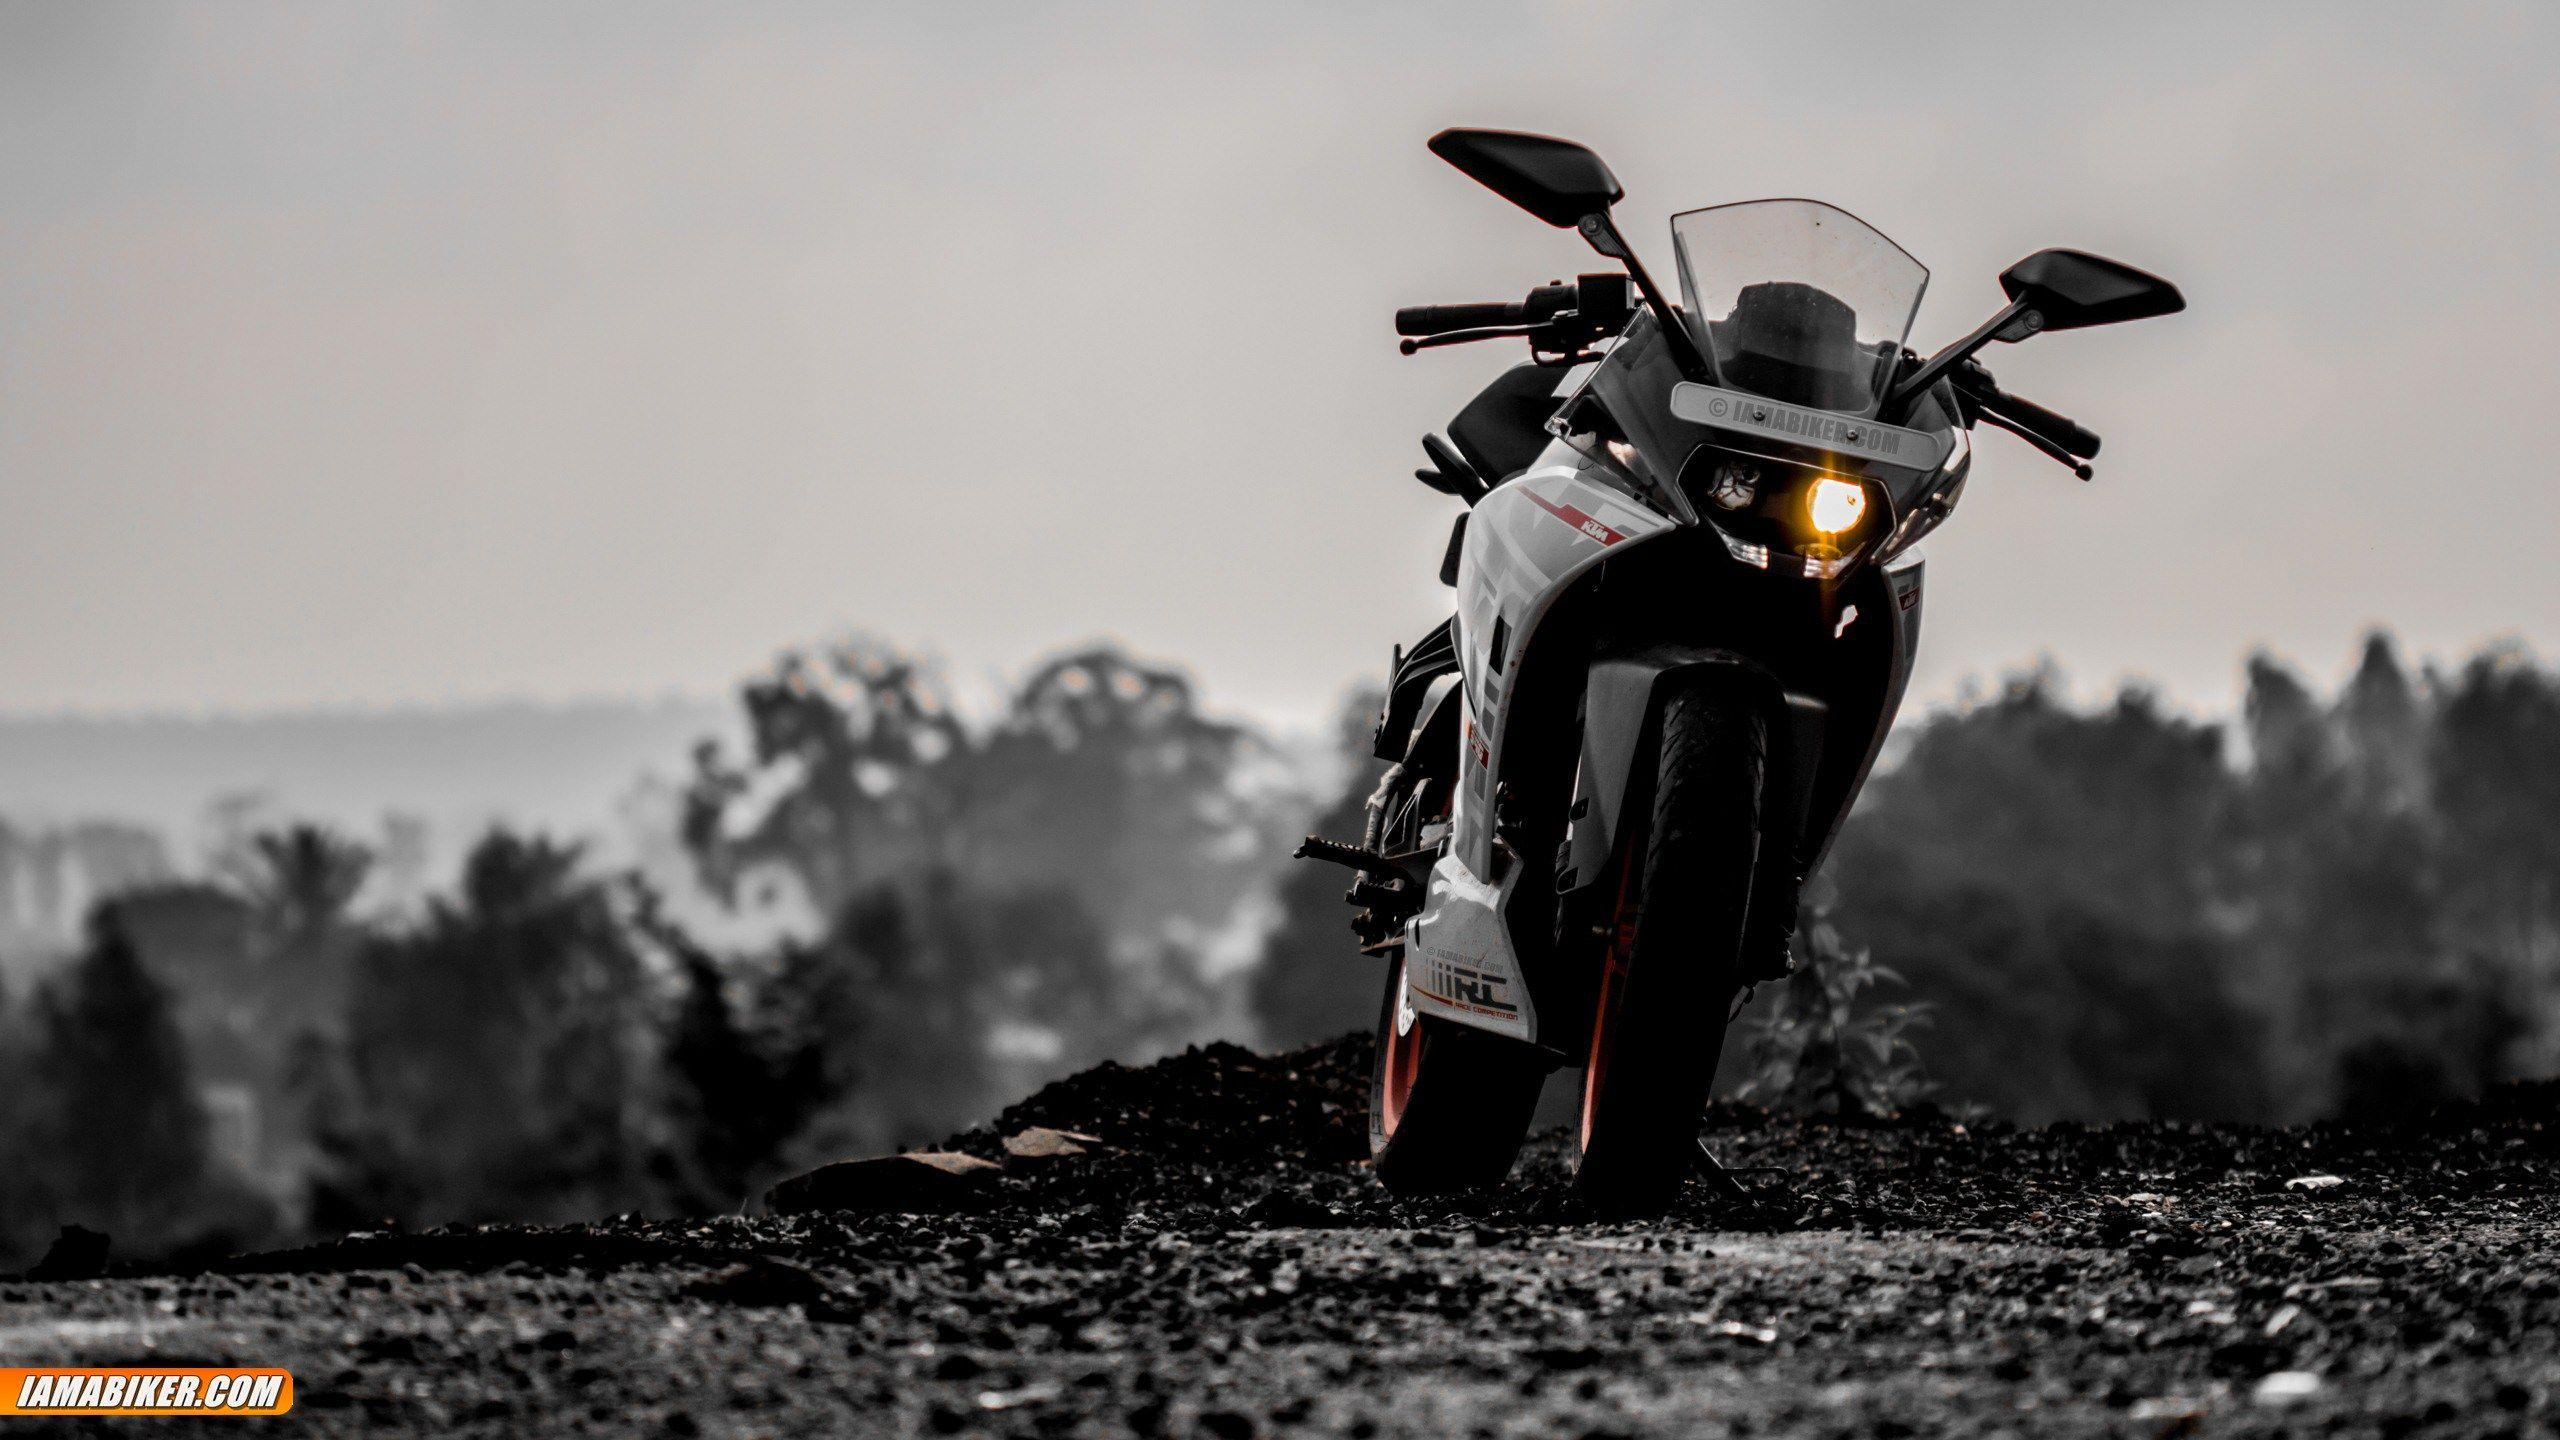 RC 390 HD wallpapers